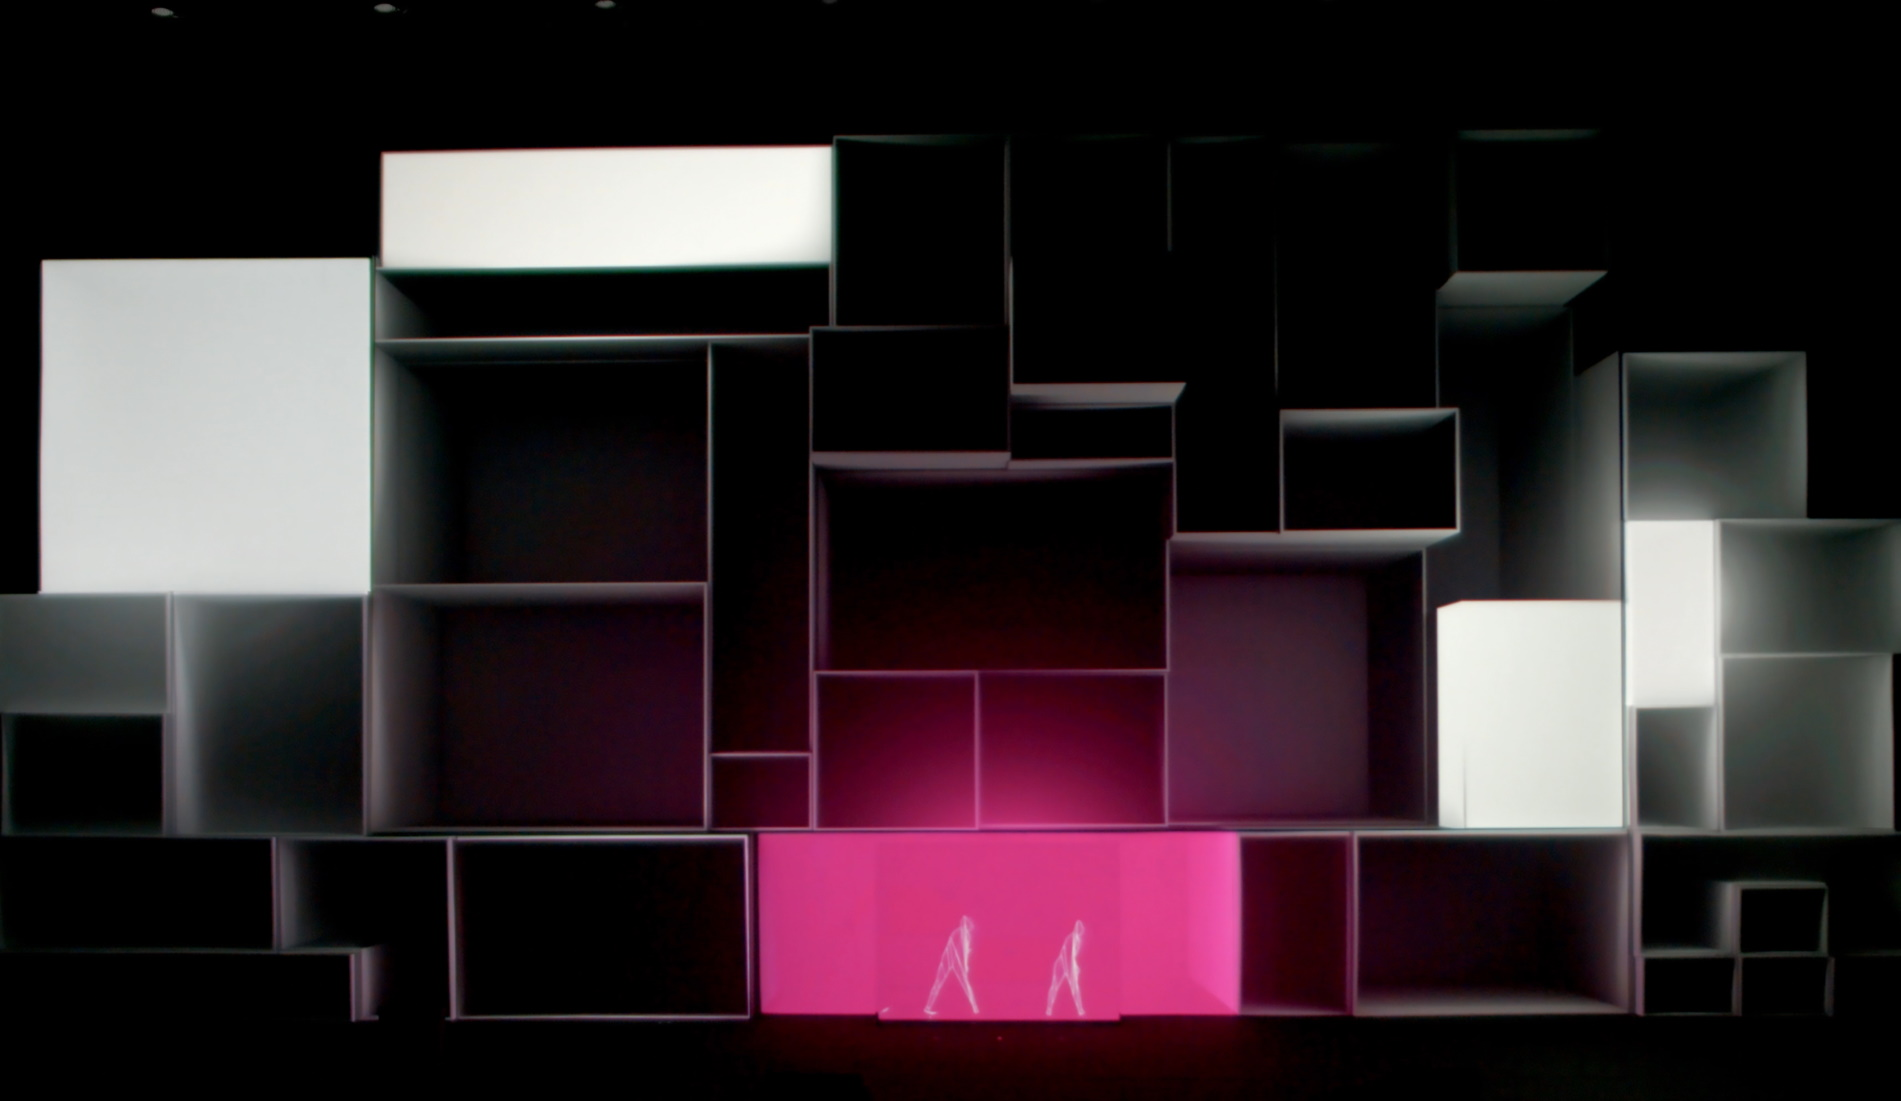 Silohuettes - Dance mapping